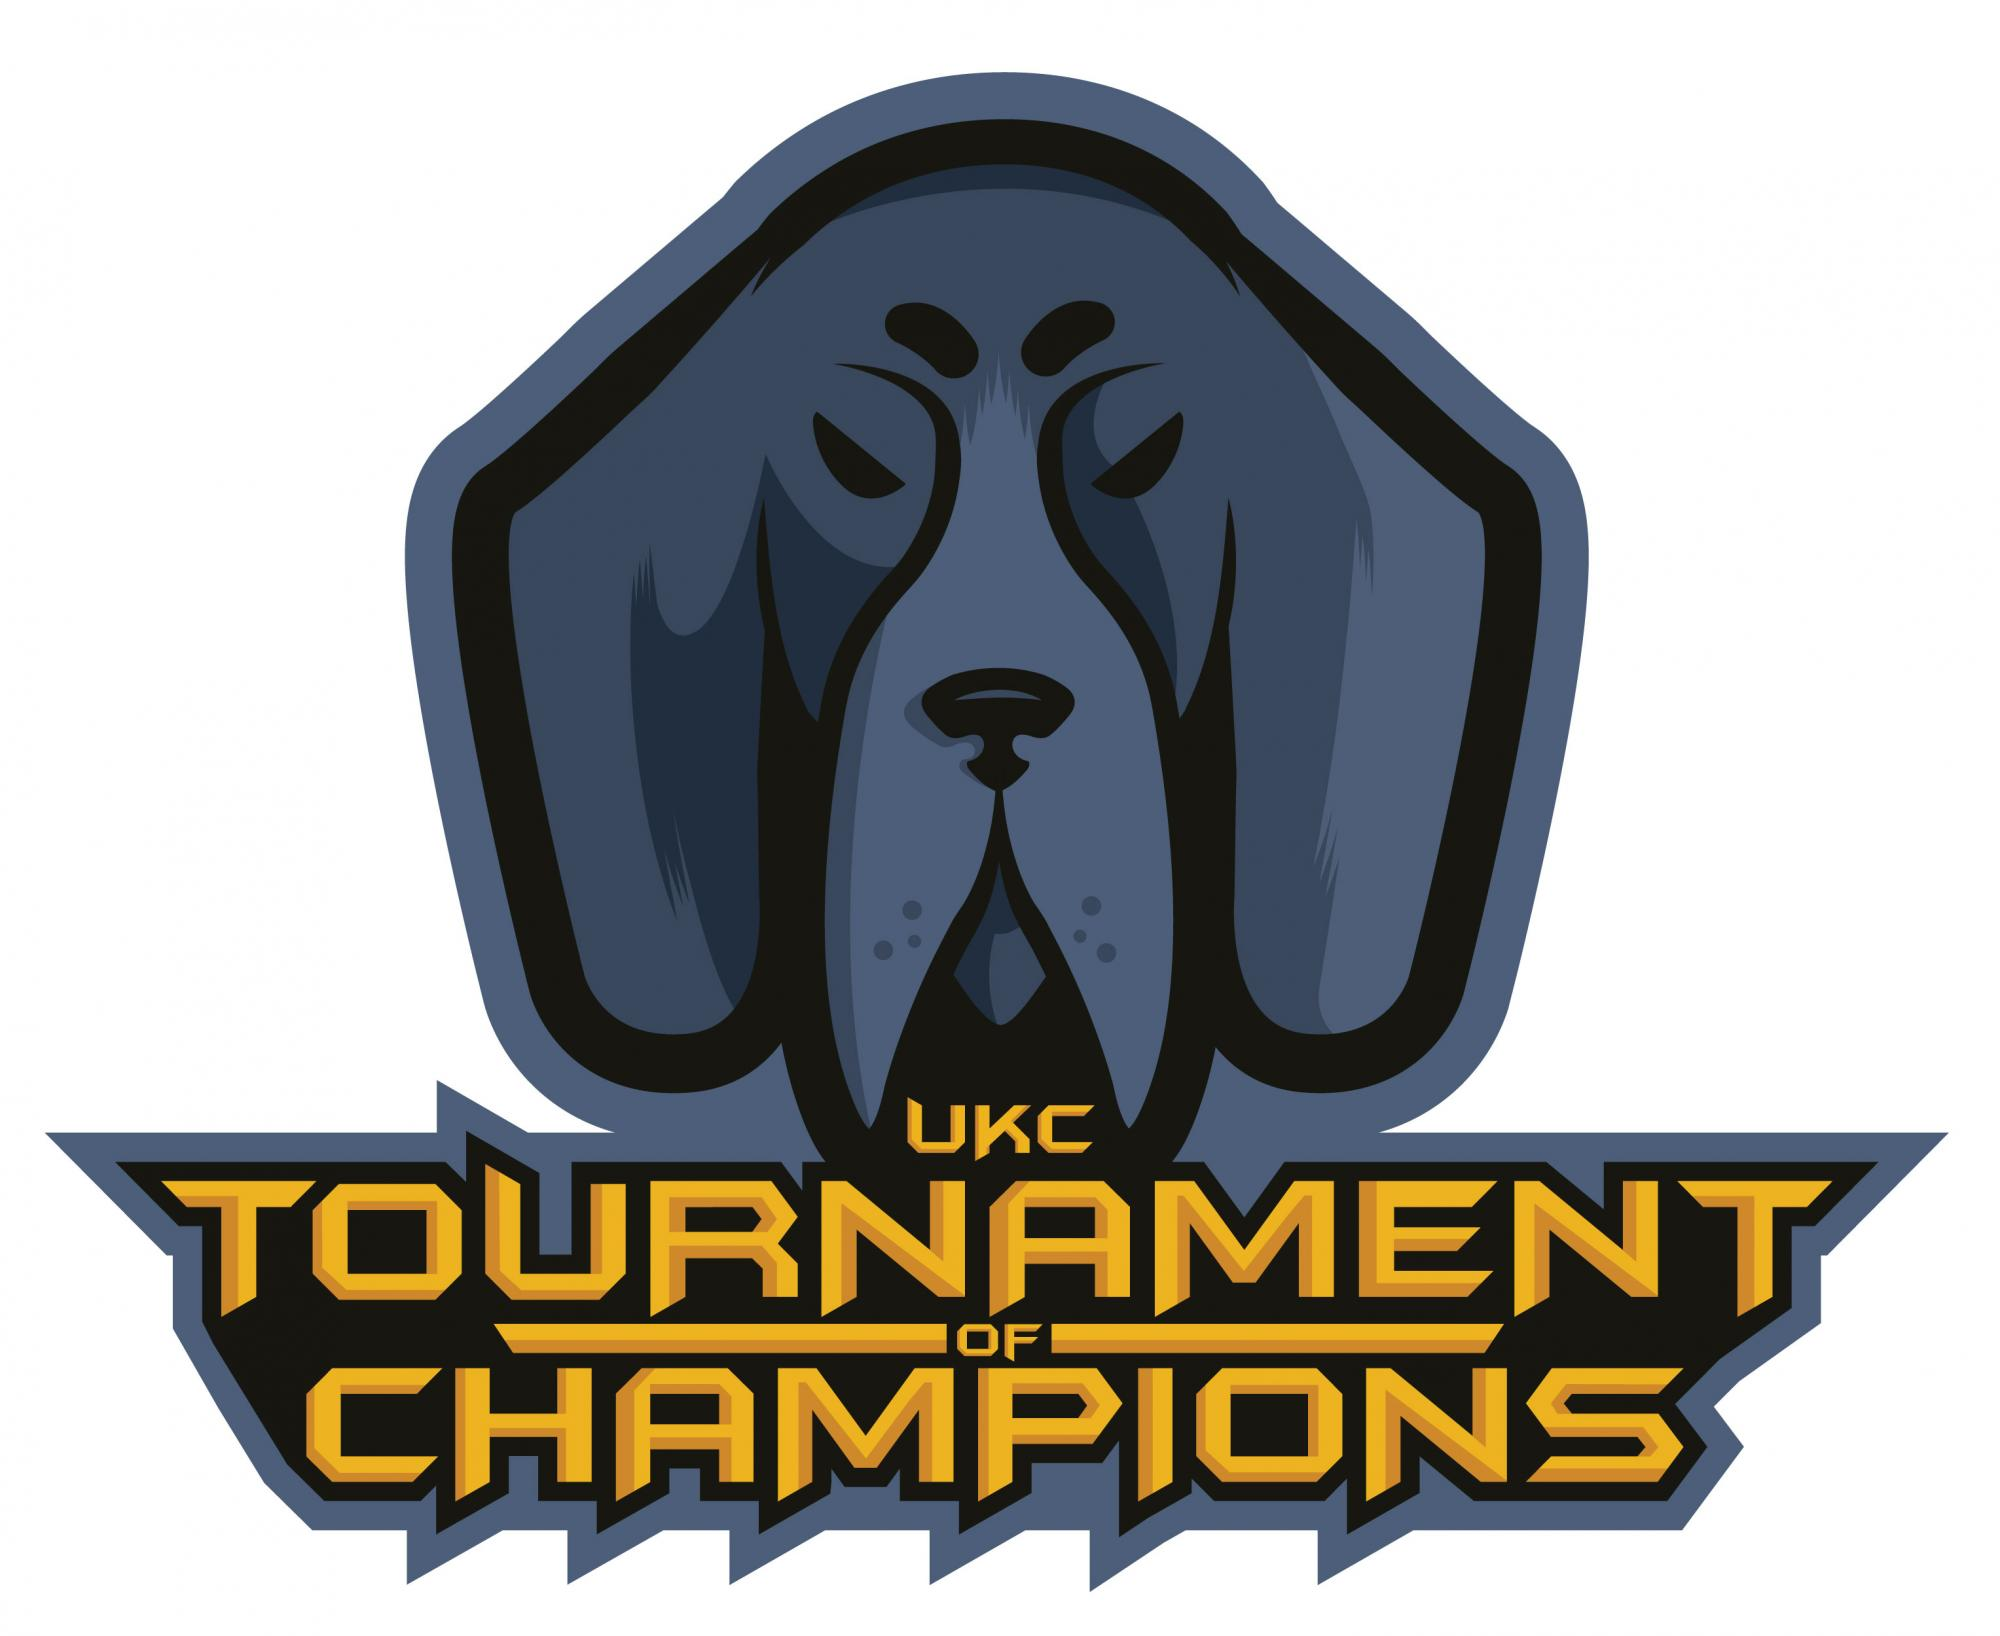 UKC Tournament of Champions logo